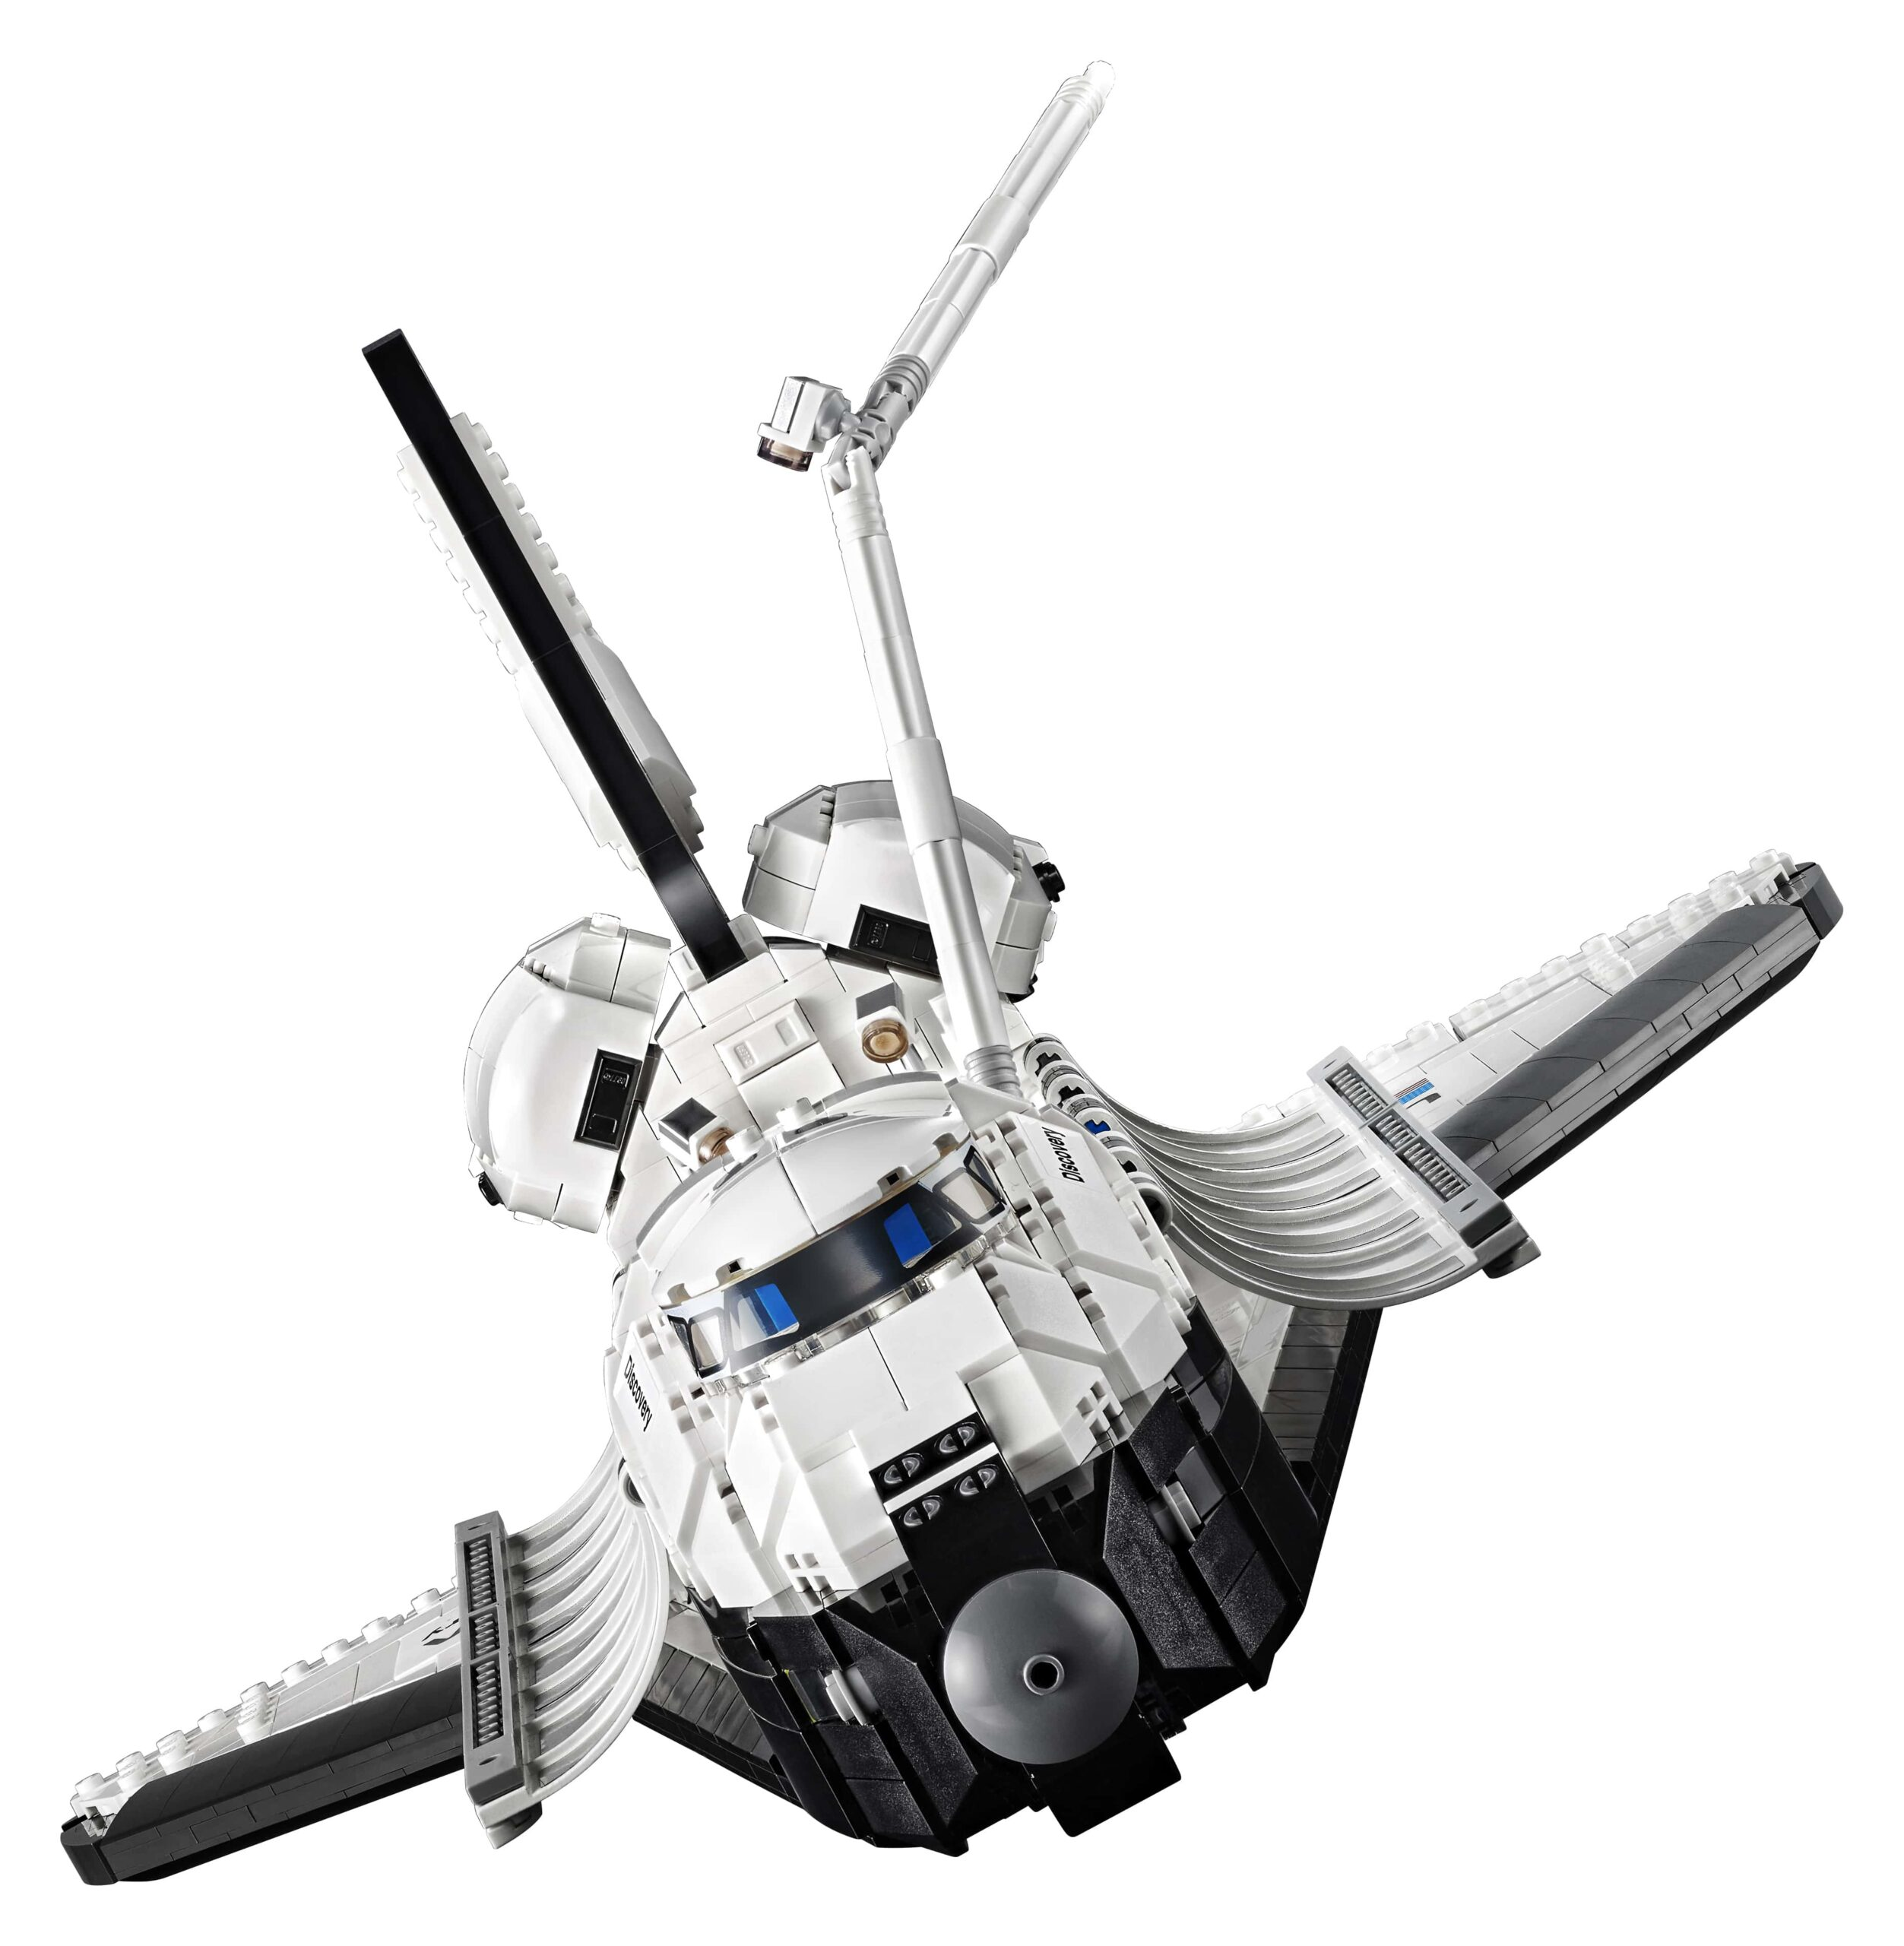 LEGO NASA Space Shuttle Discovery Product 8